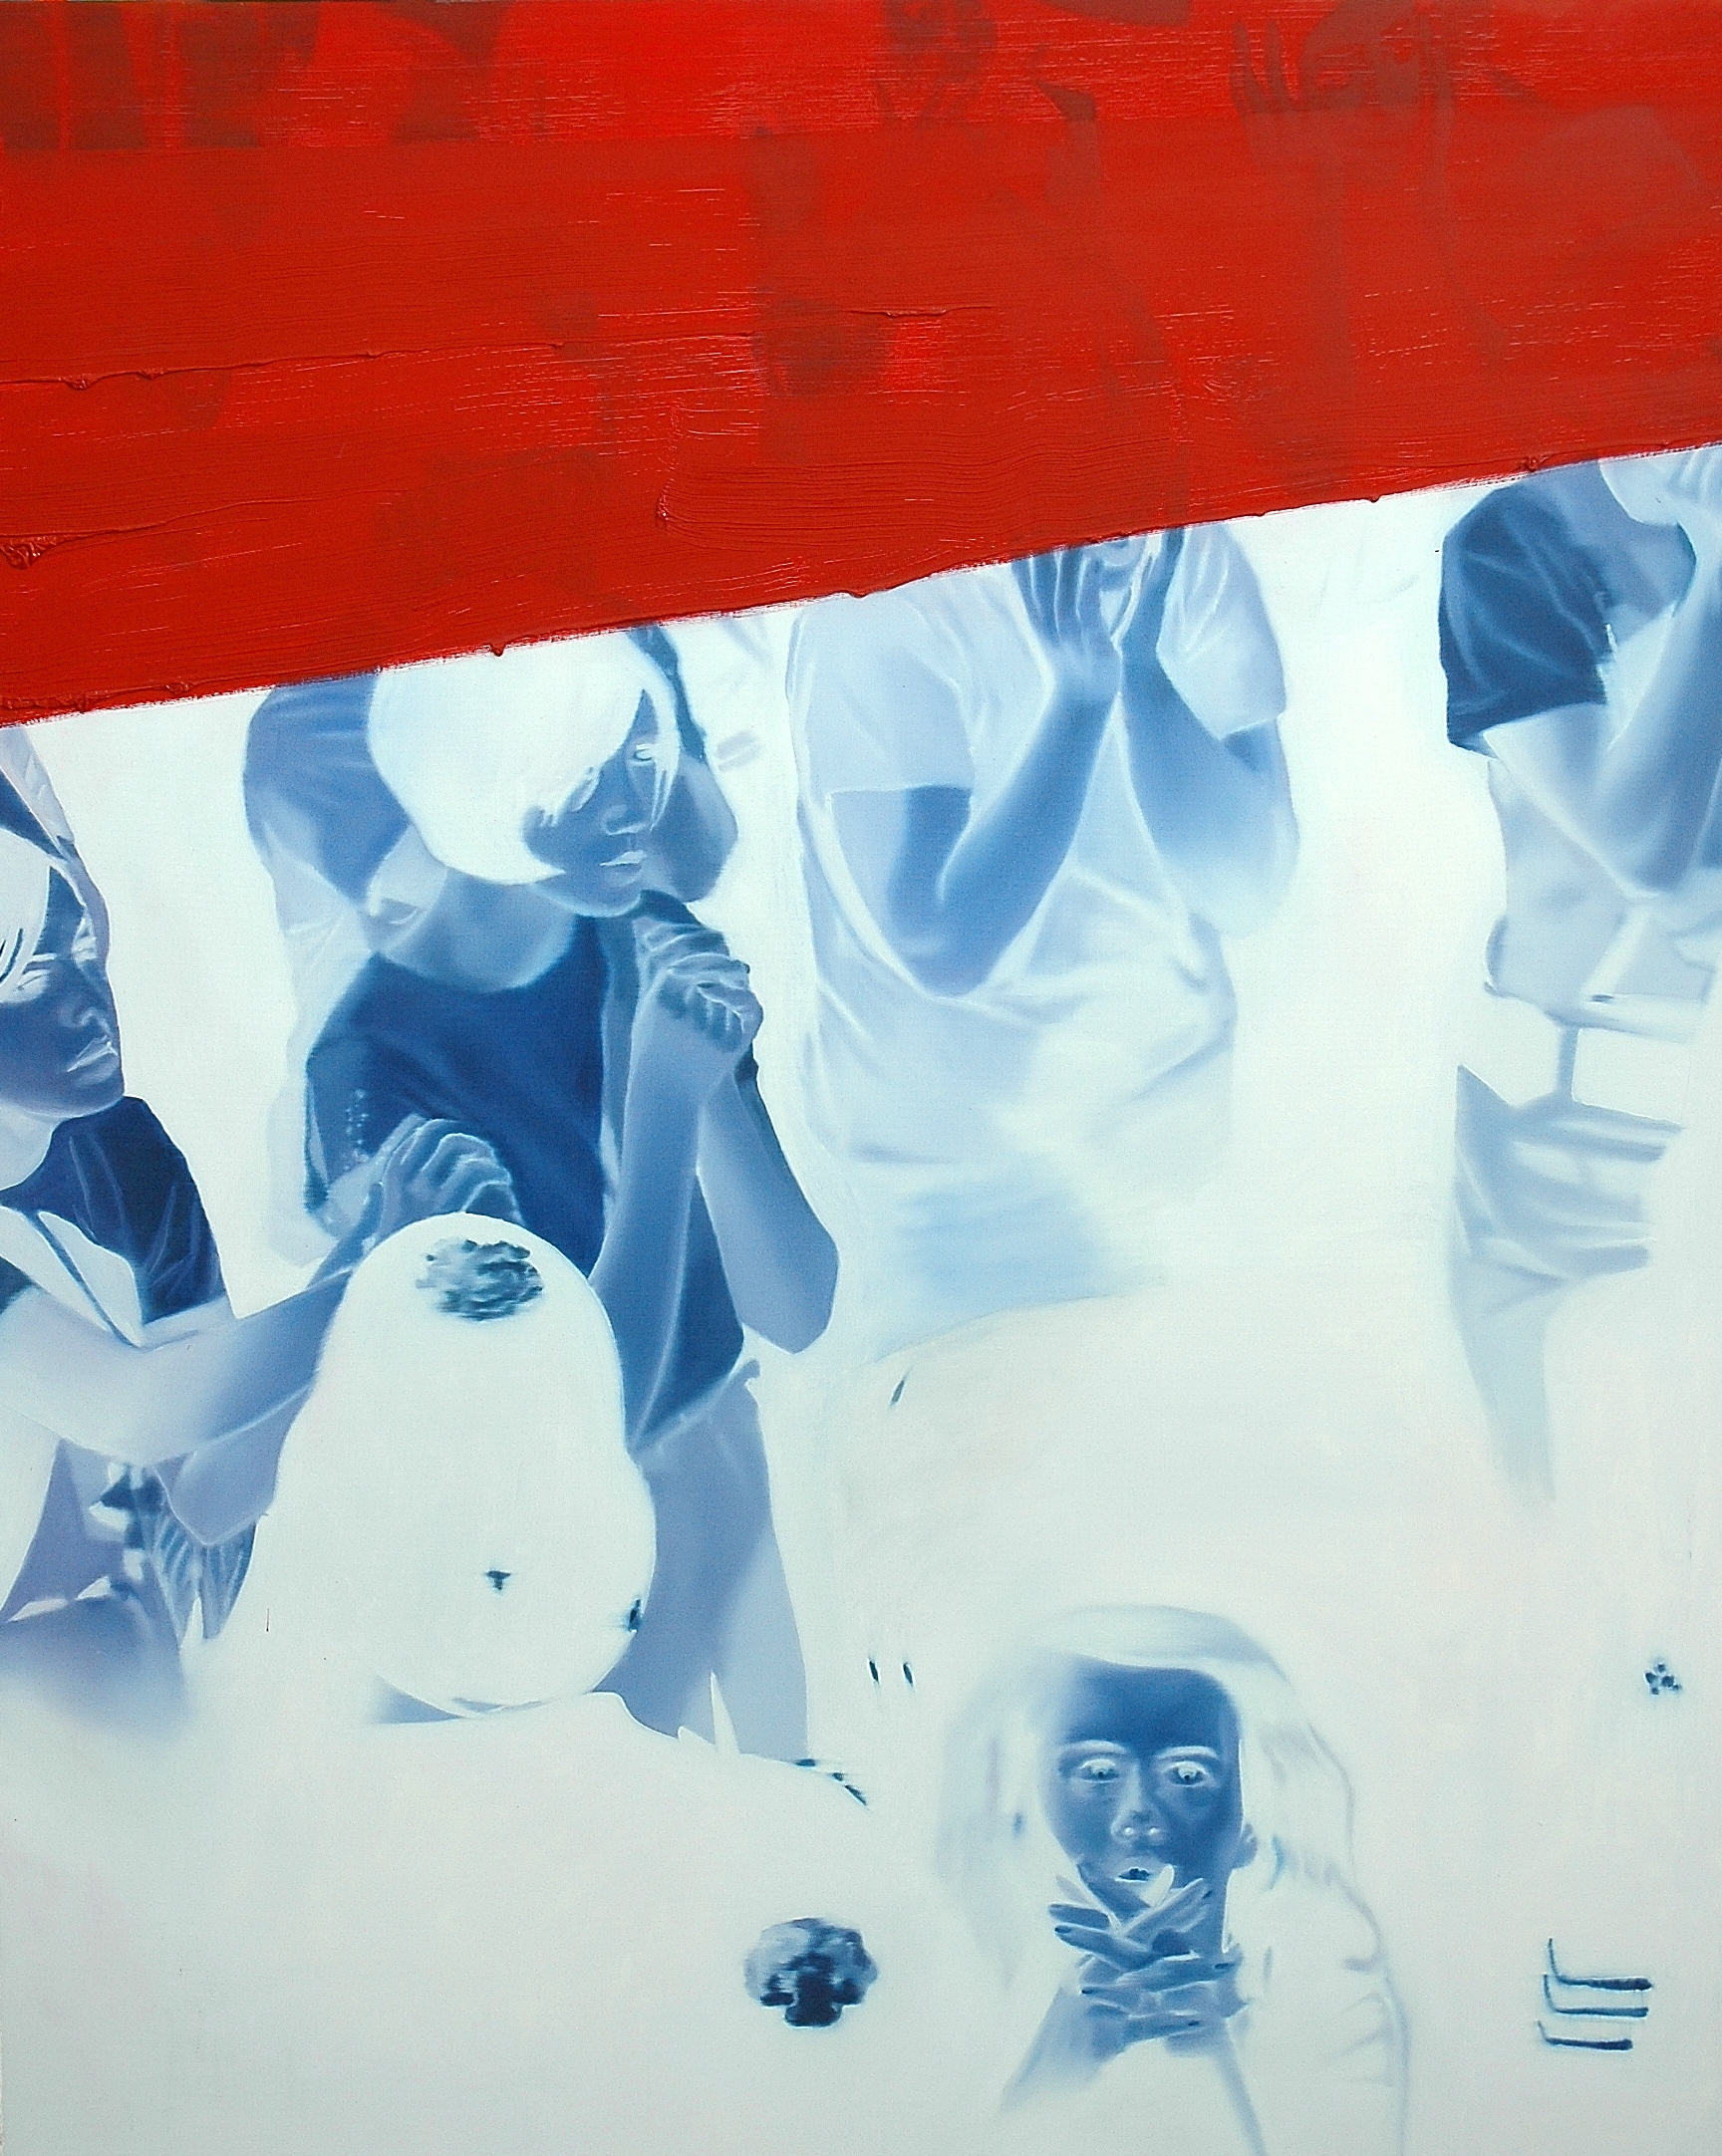 Untitled , 2002, oil on canvas, 162 x 130cm. Private collection, France